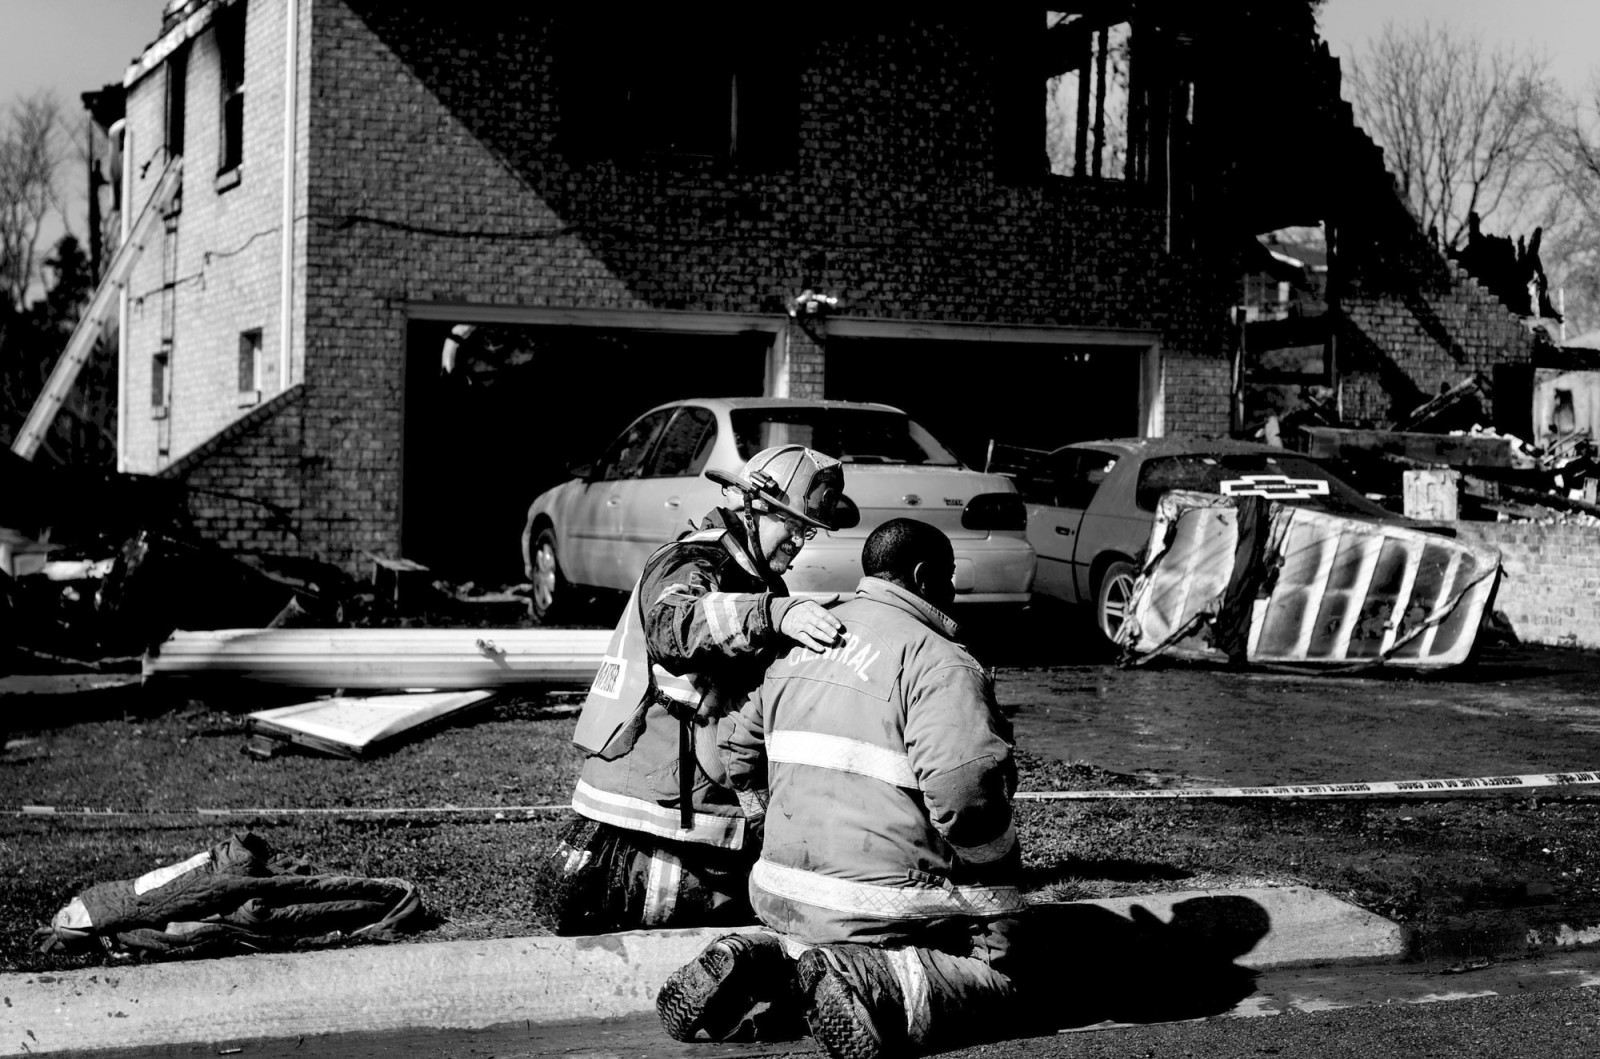 Gary Berendzen consoles Justin Barksdale after the body of a 6-year-old was finally recovered from the home that was destroyed by fire overnight in Holt's Summit, Mo. The fire started around 3:00 am and claimed the lives of three children..